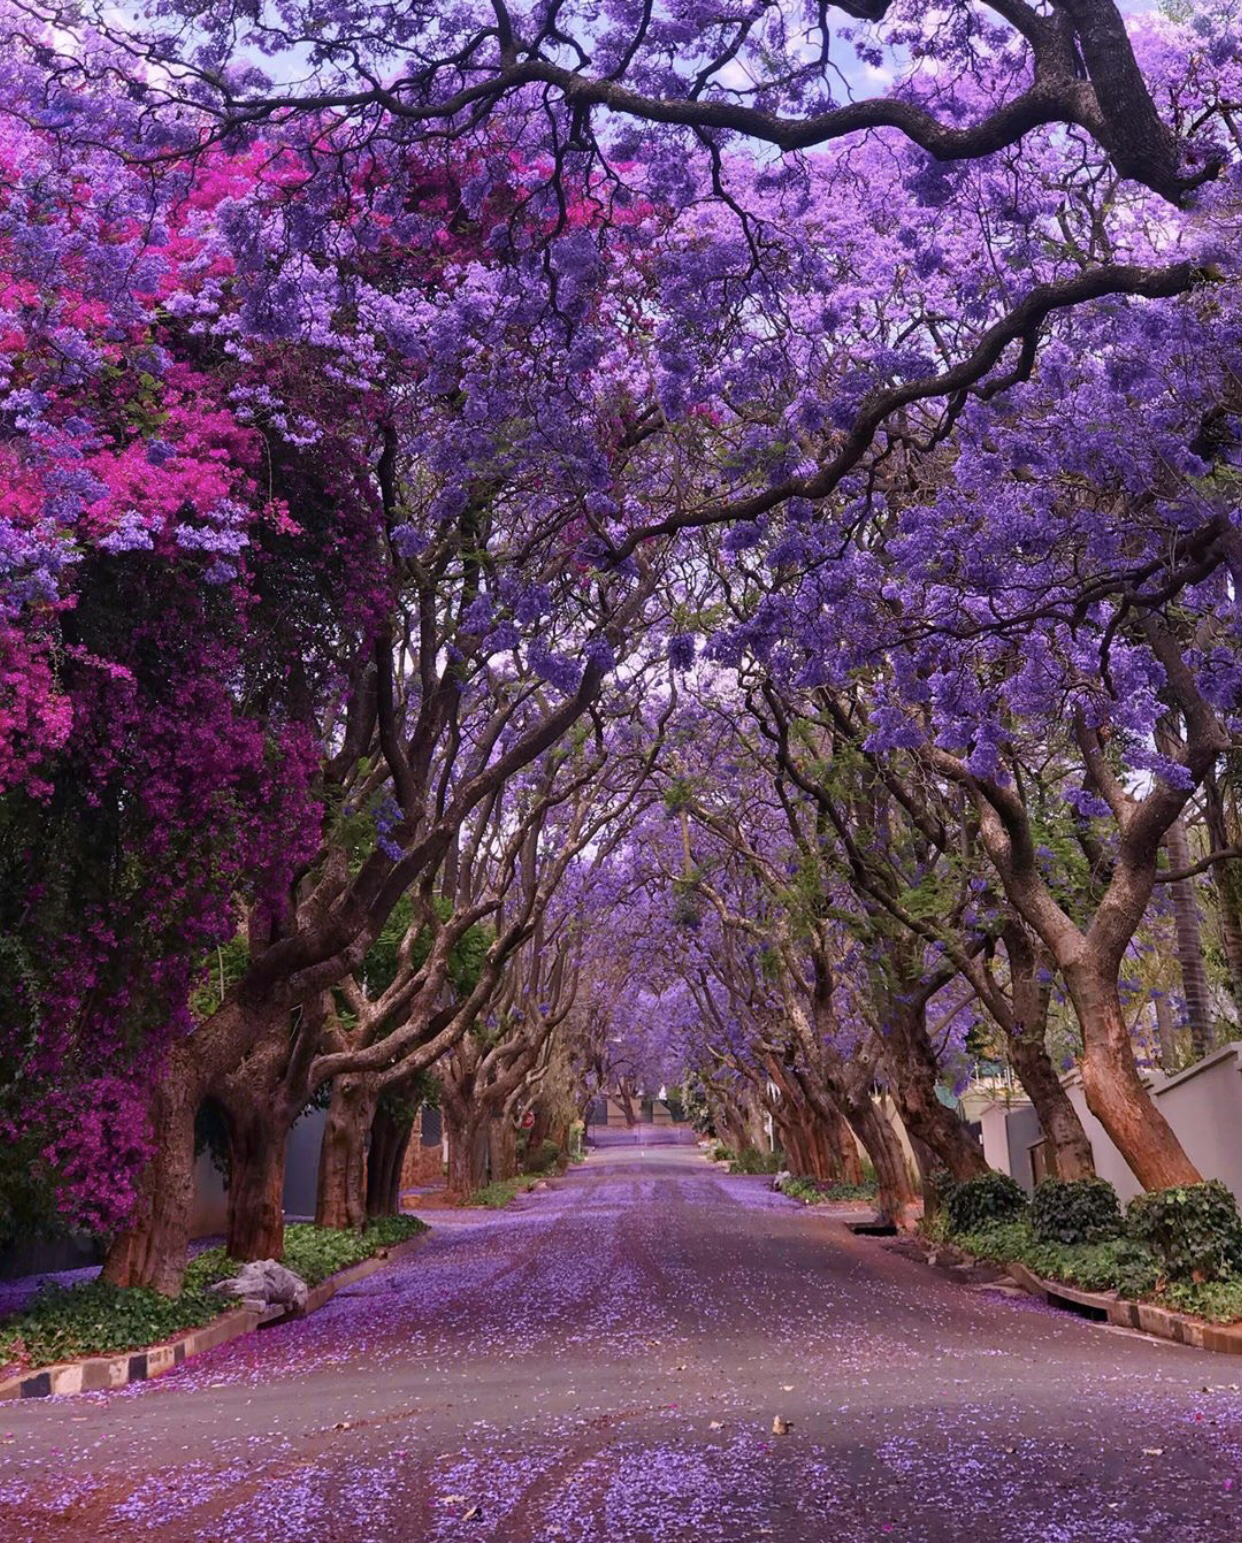 Jacaranda trees in Johannesburg, South Africa